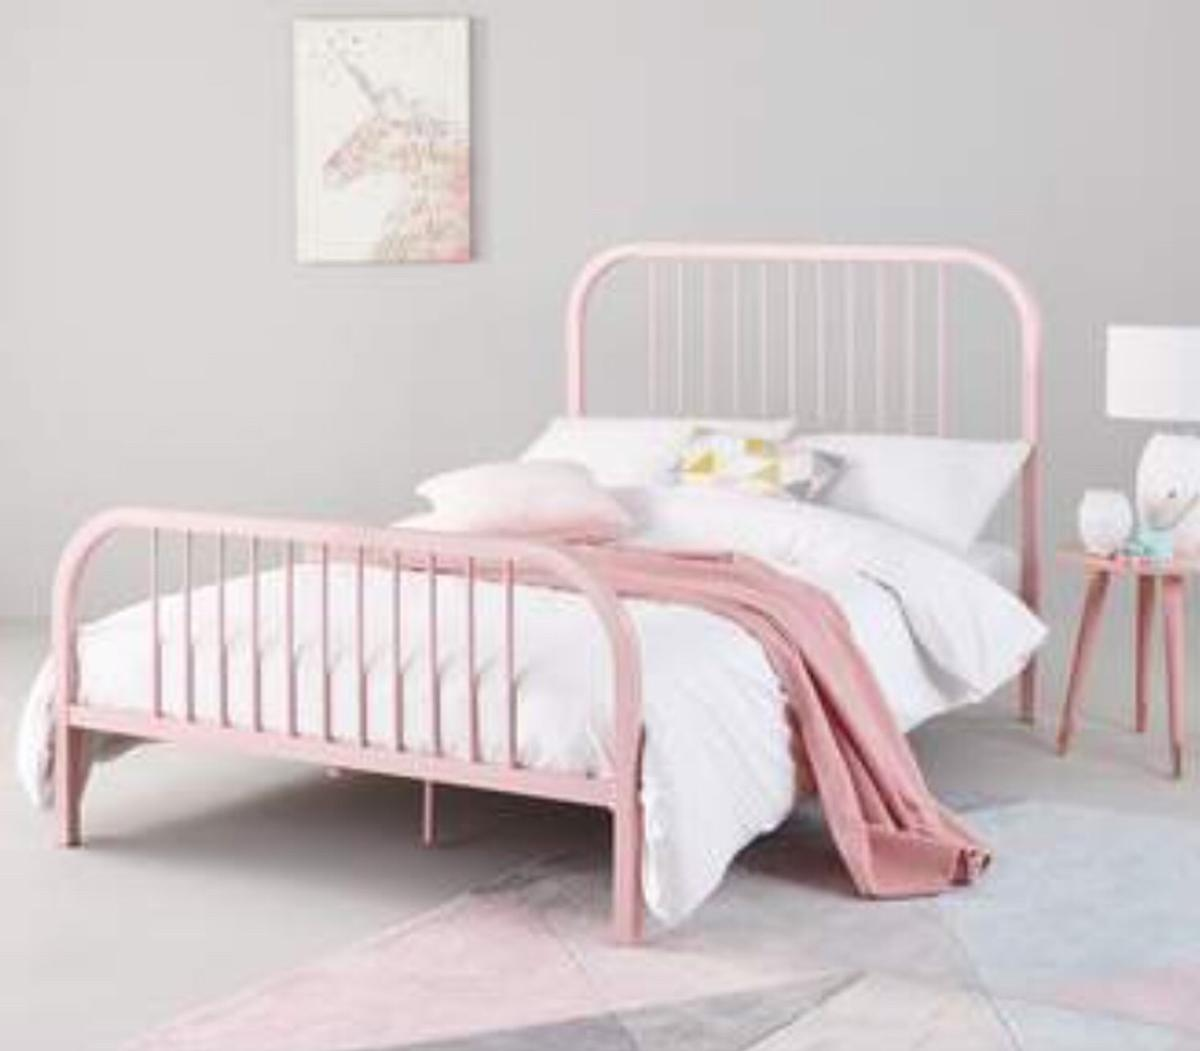 New Harper Small Double Bed Frame Pink In Northwich For 60 00 For Sale Shpock